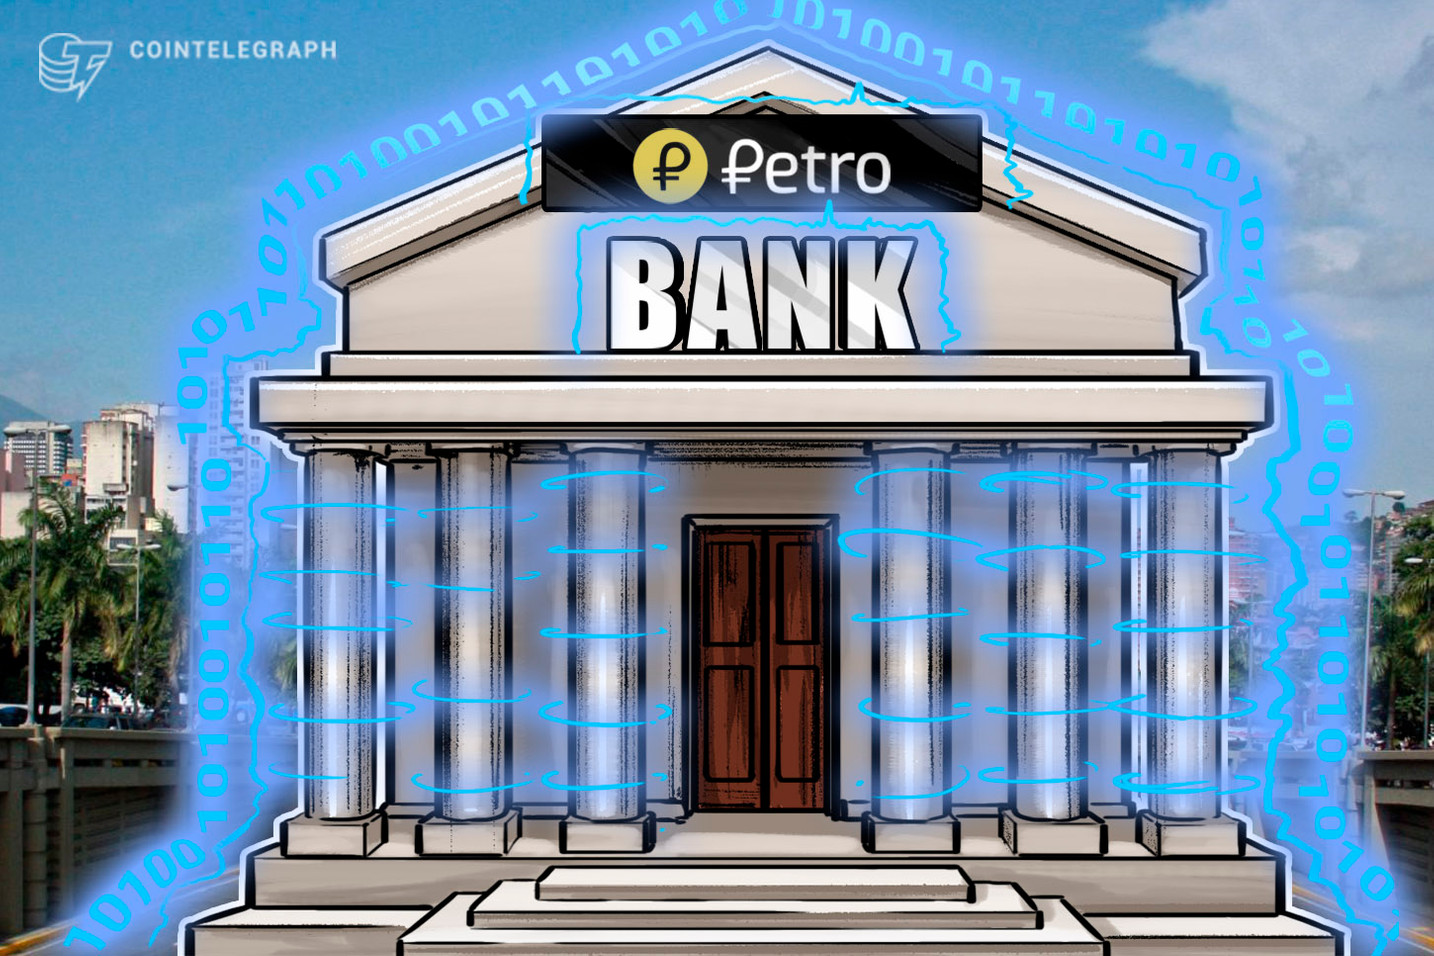 Venezuelan President Announces Petro-Fuelled Crypto Bank For Youth Initiatives